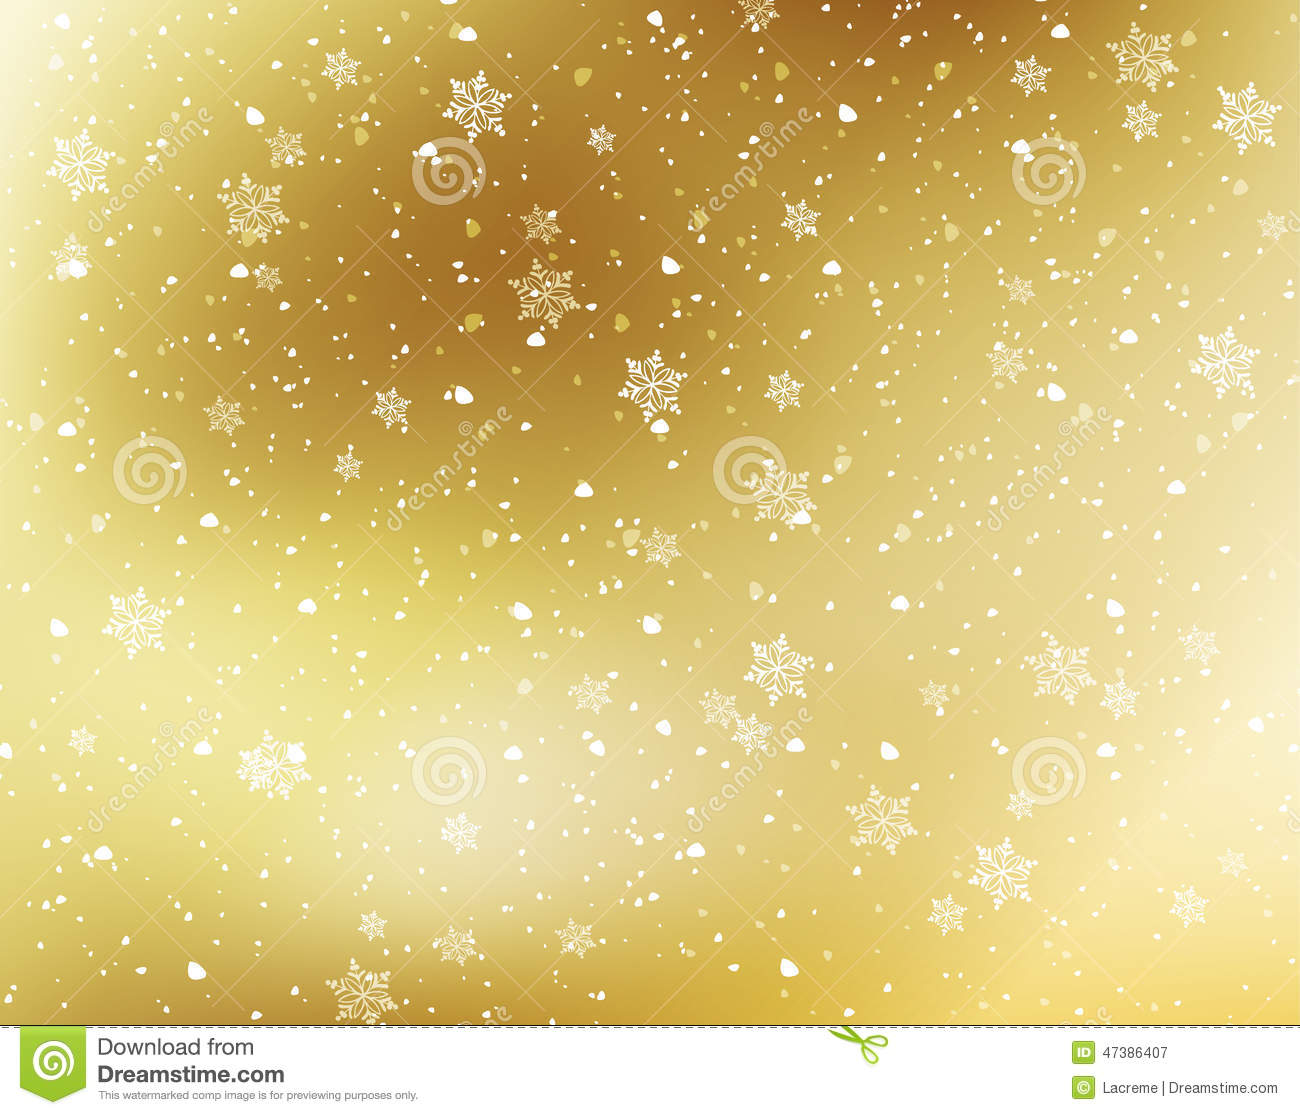 Snowflakes Background Stock Vector - Image: 47386407